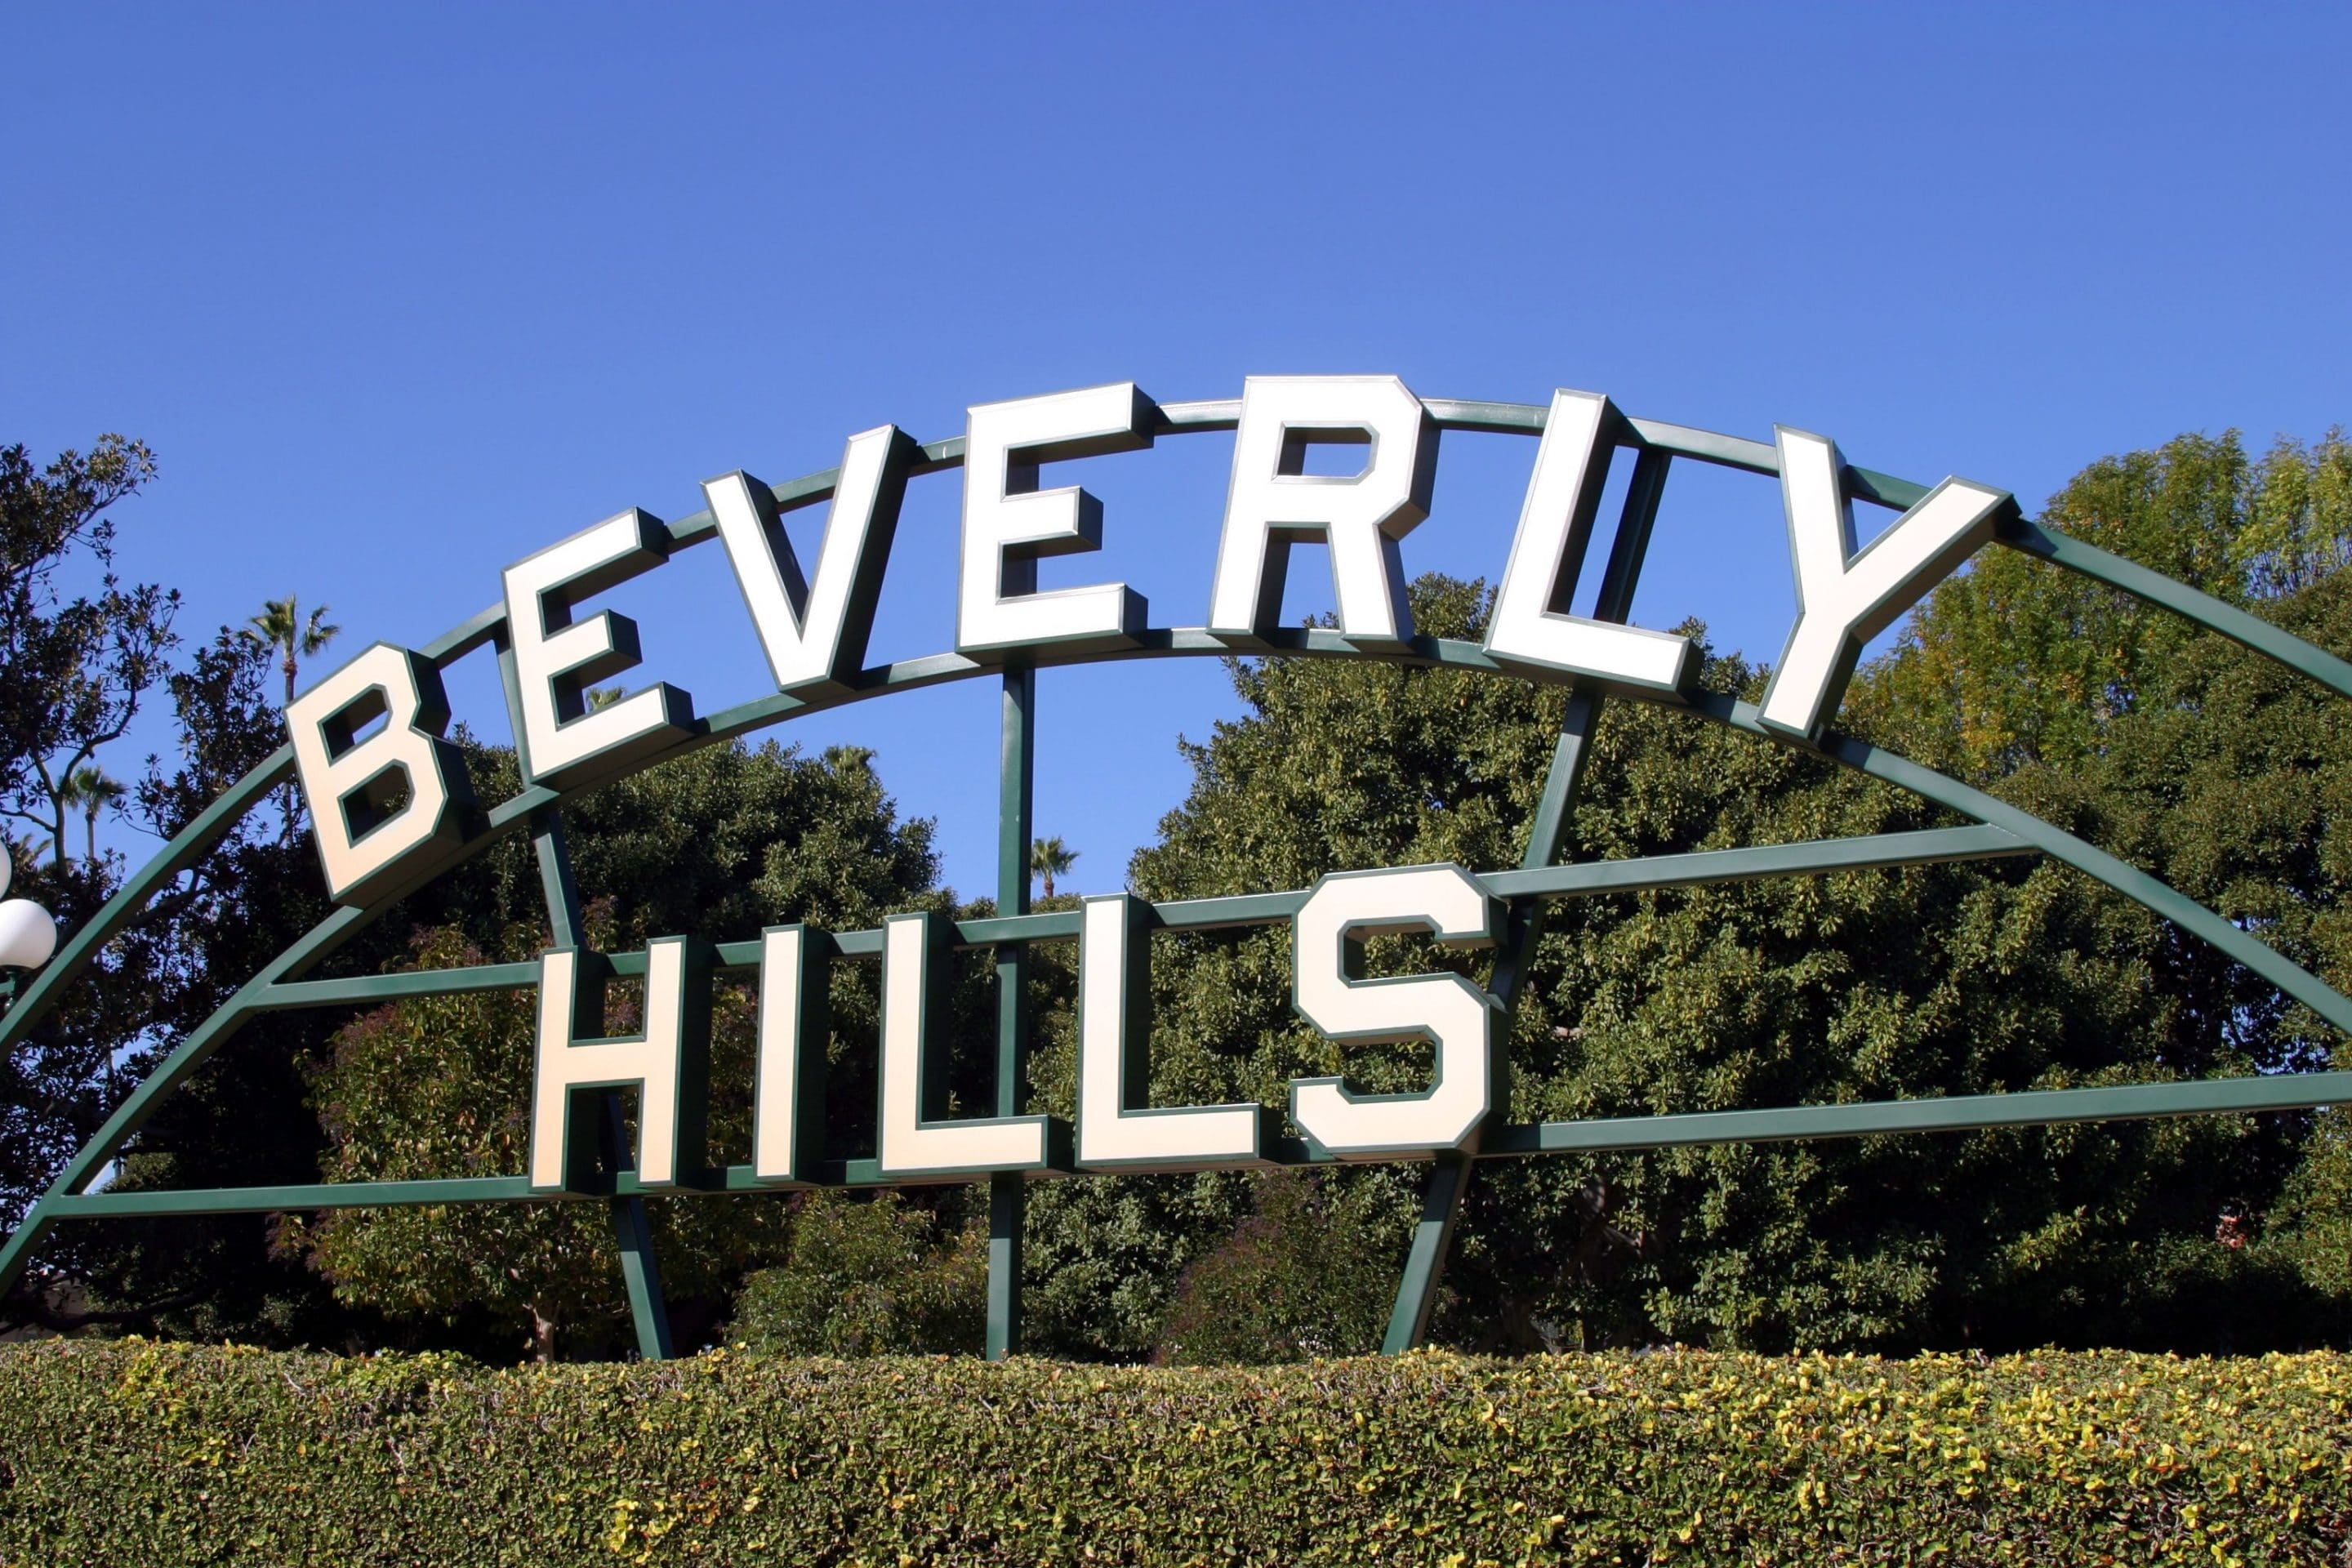 Content Marketing and Beverly Hills: What You Need to Know